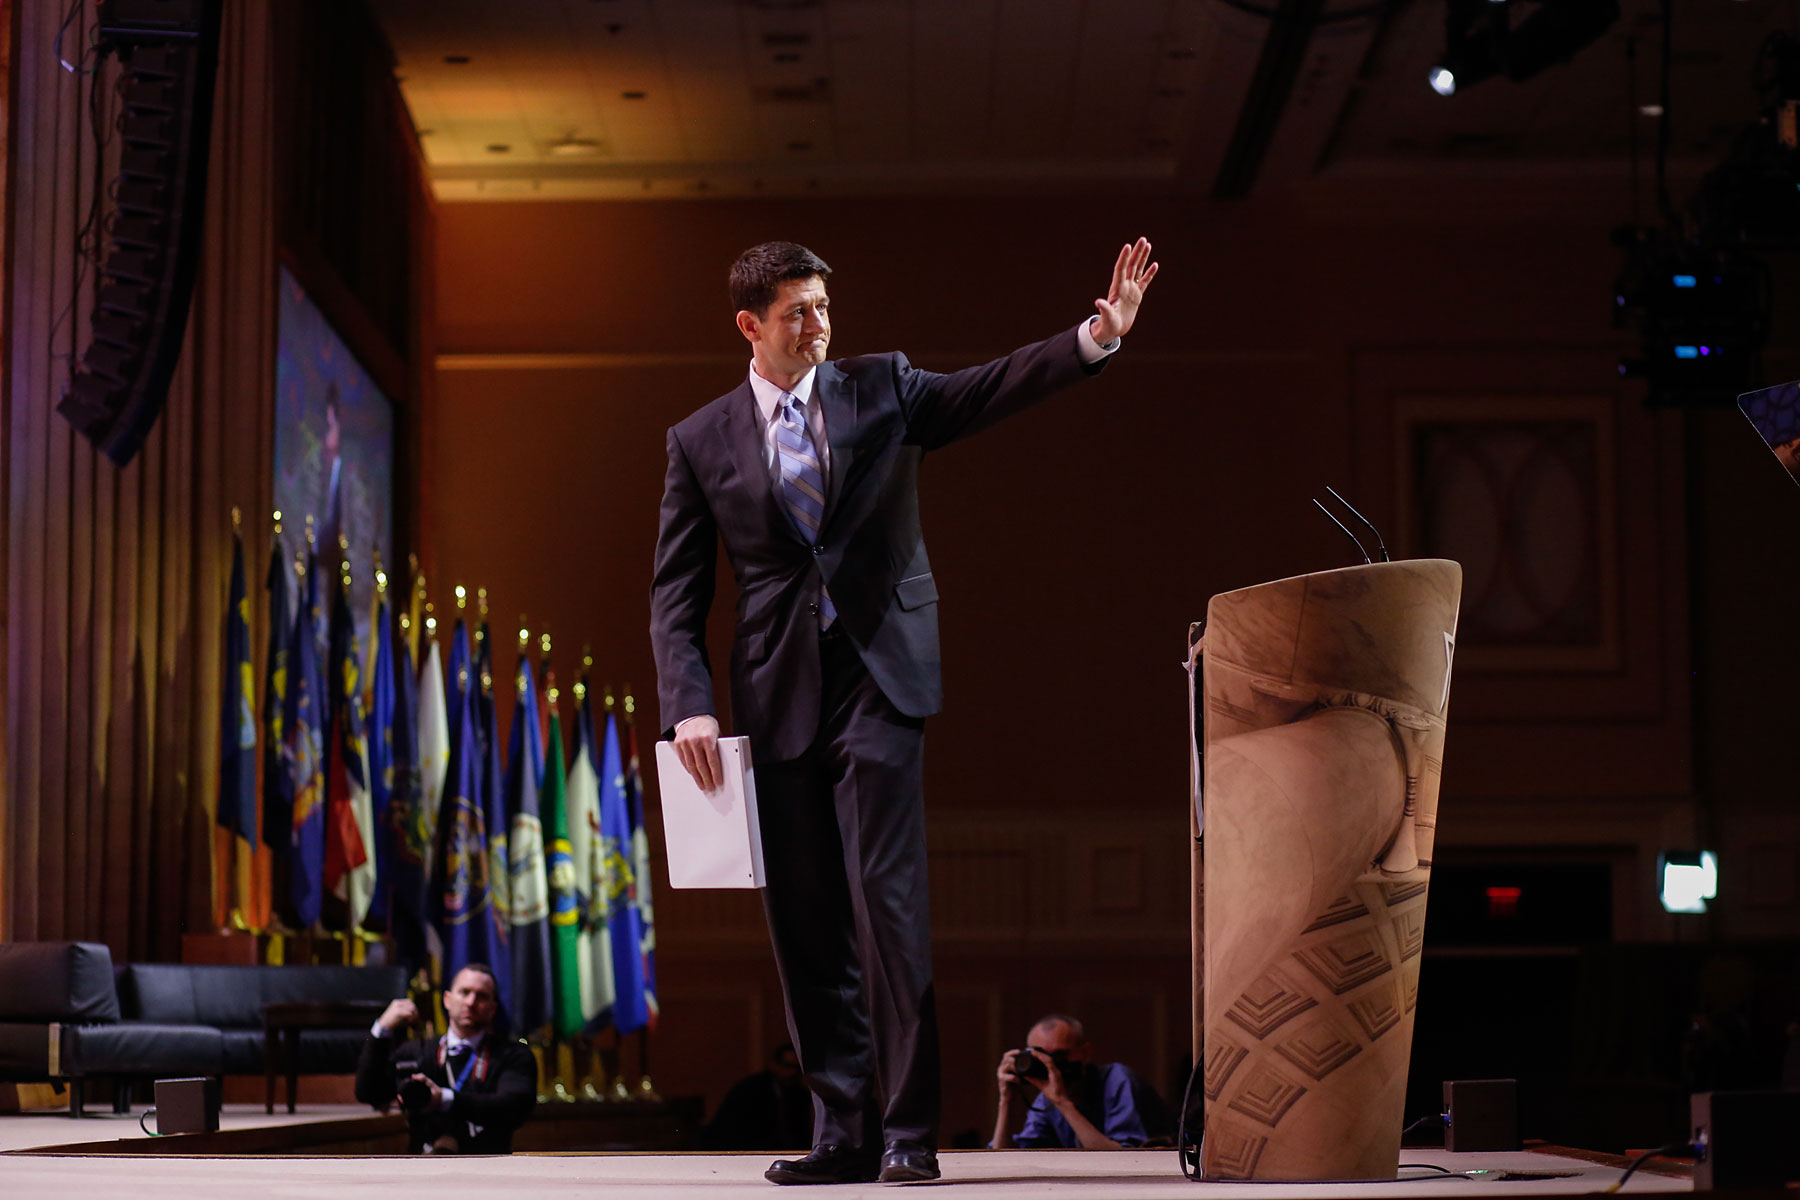 Congressman Paul Ryan, of Wisconsin, waves to the crowd after speaking during the Conservative Political Action Conference at the Gaylord National Resort & Convention Center in National Harbor, Md., March 6, 2014.